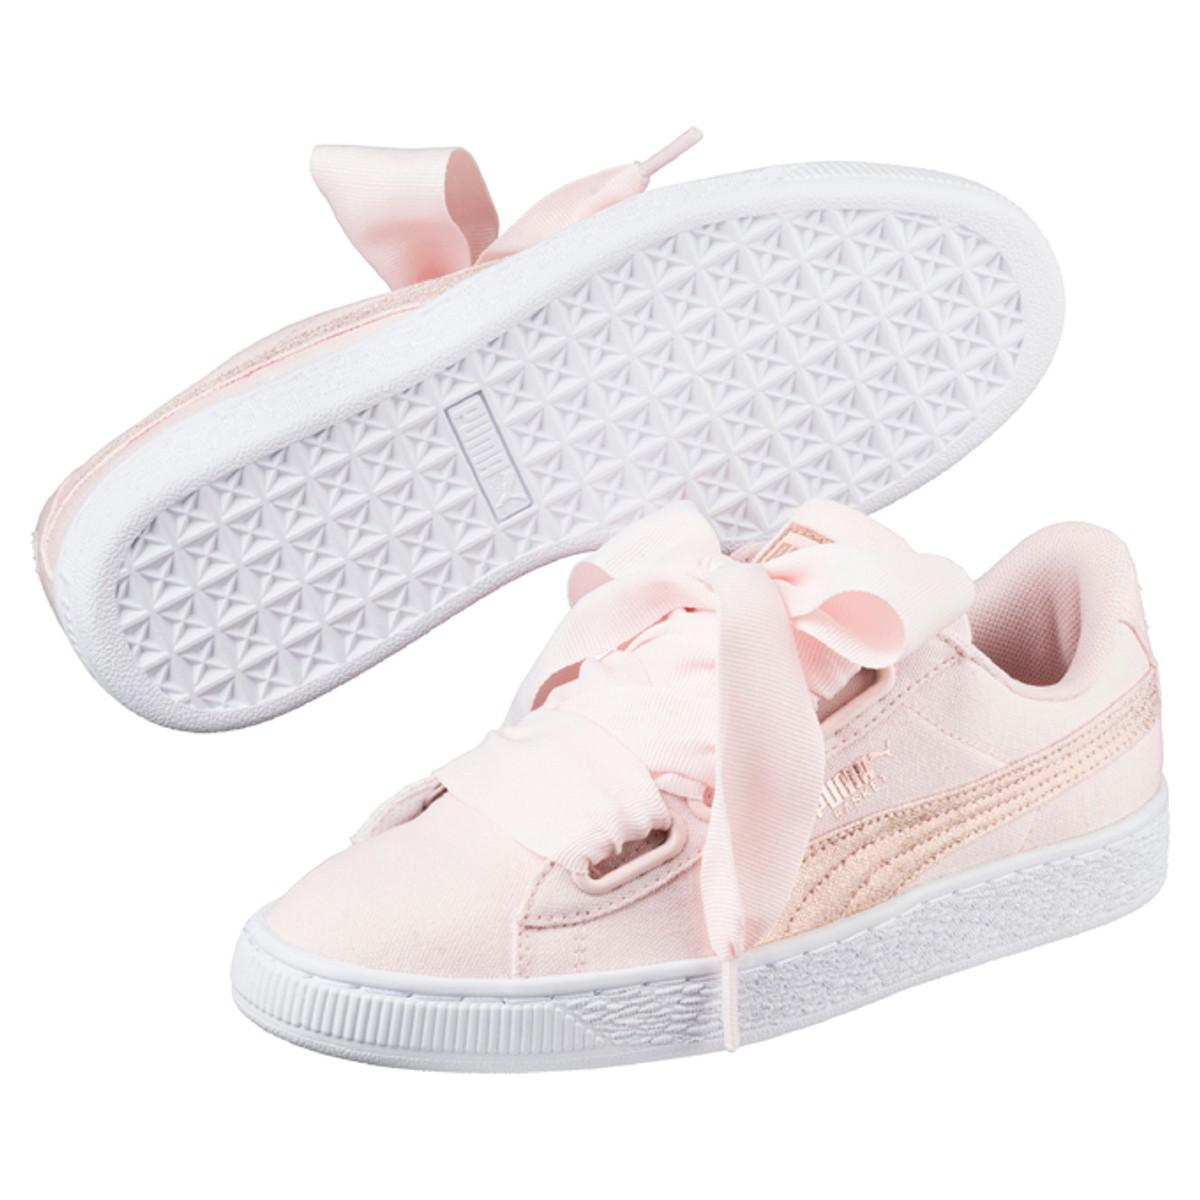 PUMA W Heart Canvas Trainers sneakernews sale online big discount cheap price cheap sale pay with paypal clearance Cheapest zes22HA3O